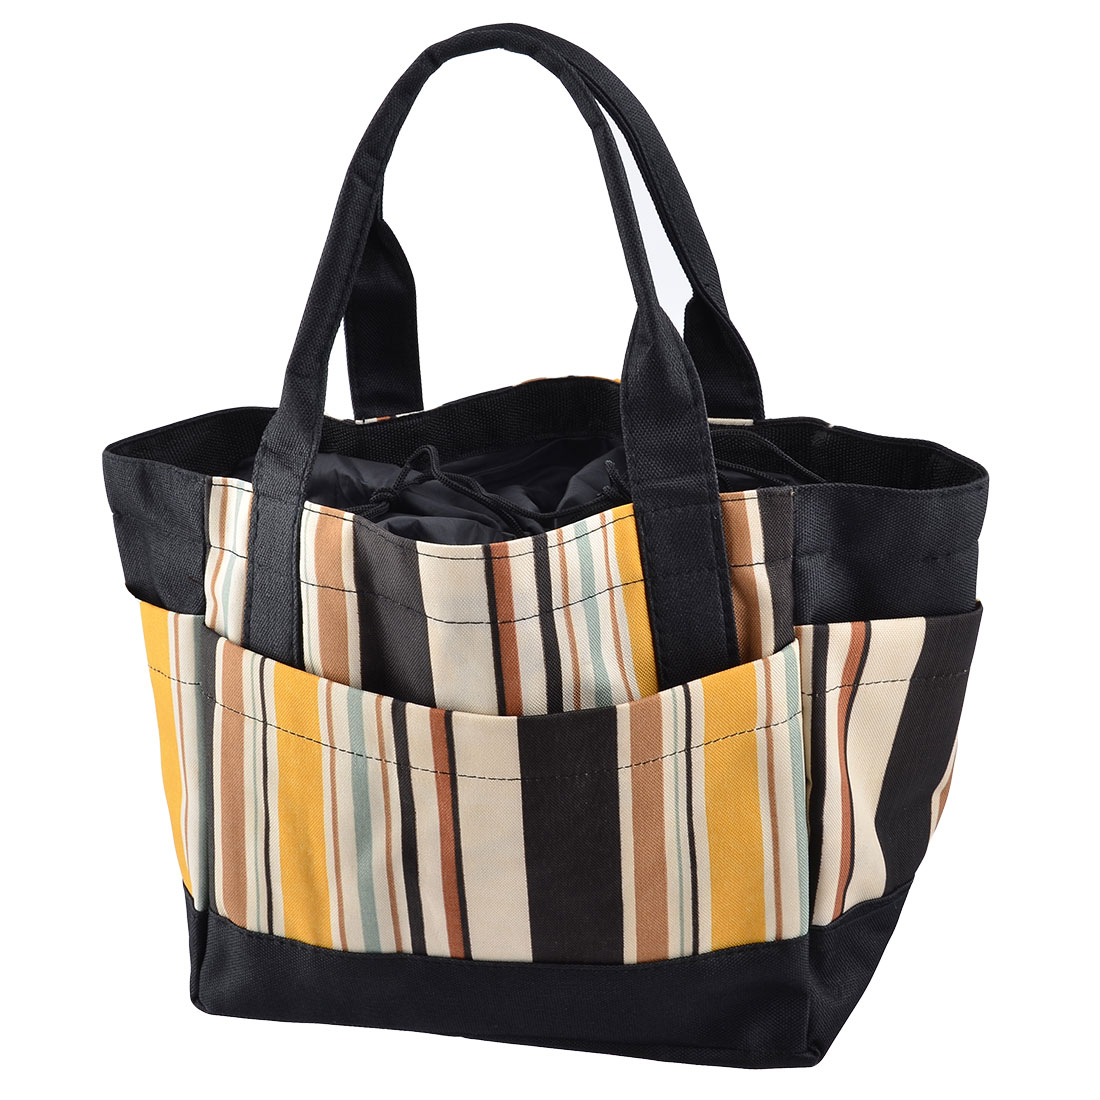 Picnic Oxford Fabric Stripe Pattern Drawstring Closure Water Cooler Pouch Bag